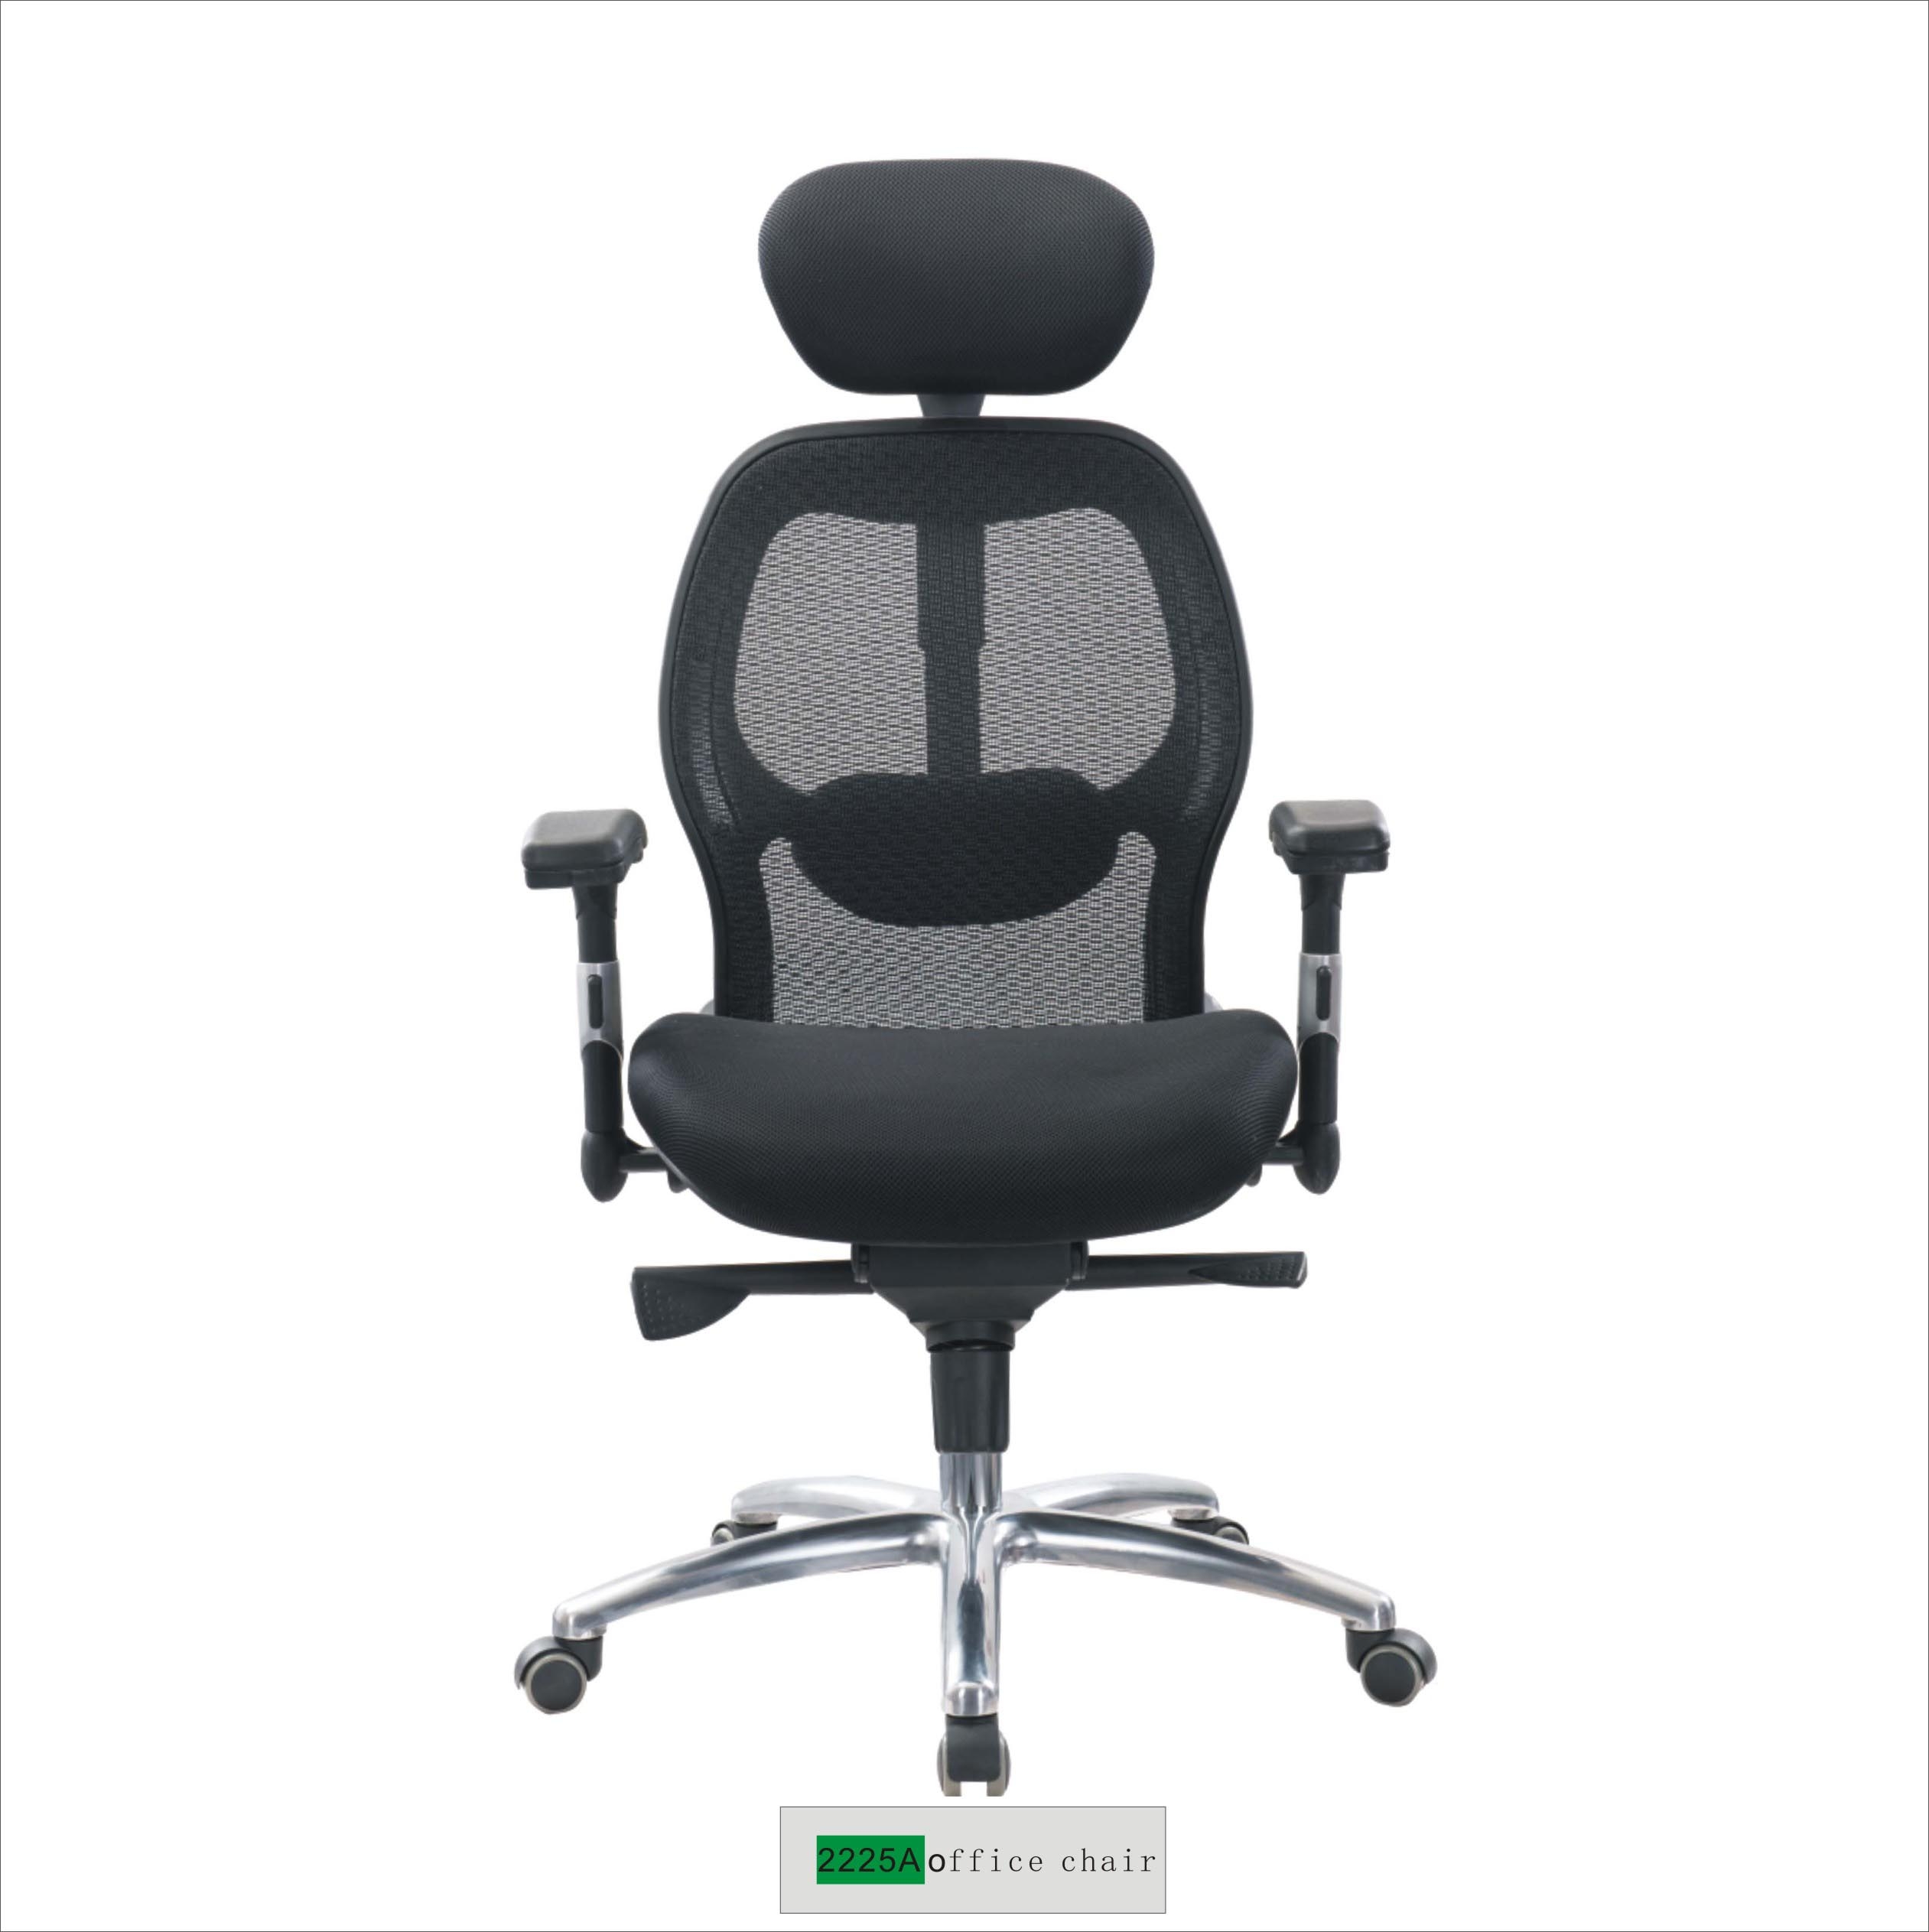 Nylon Mesh Executive Chair 2225A